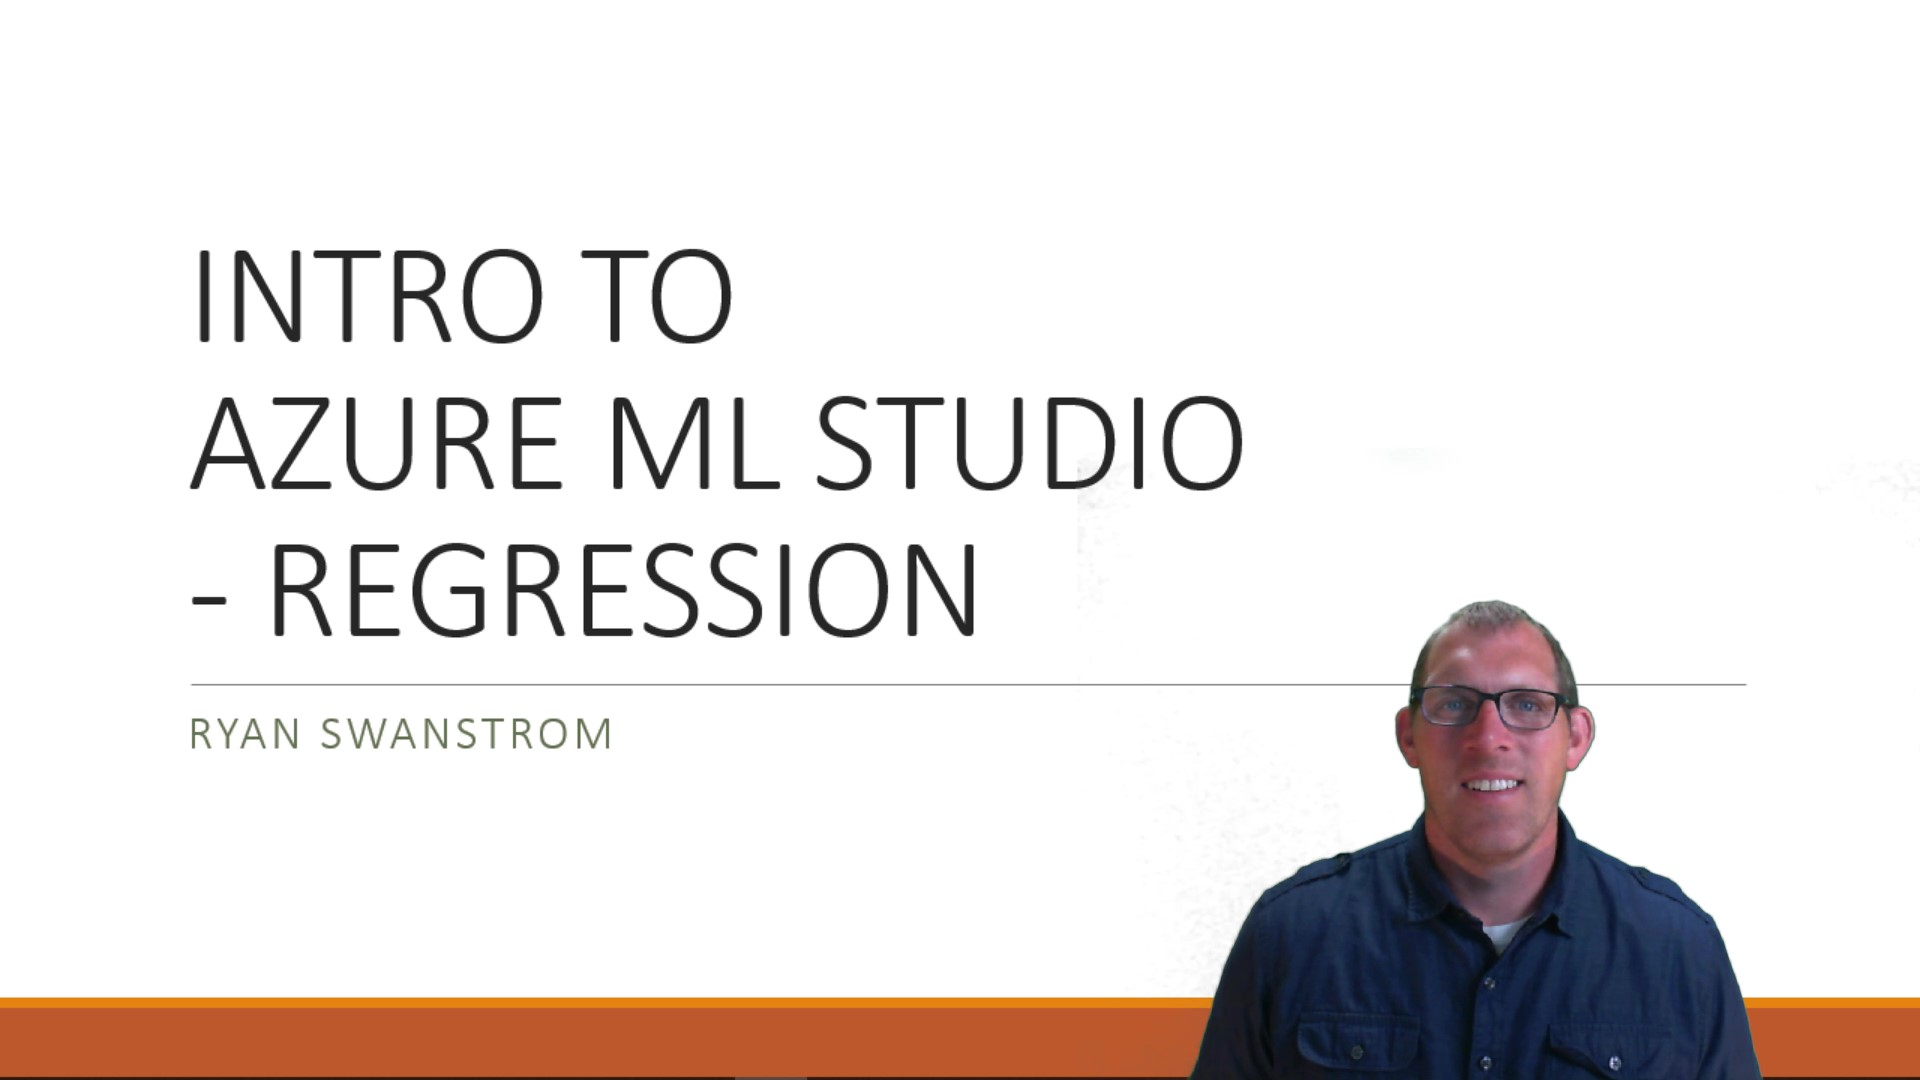 Intro to Azure ML Studio with Regression